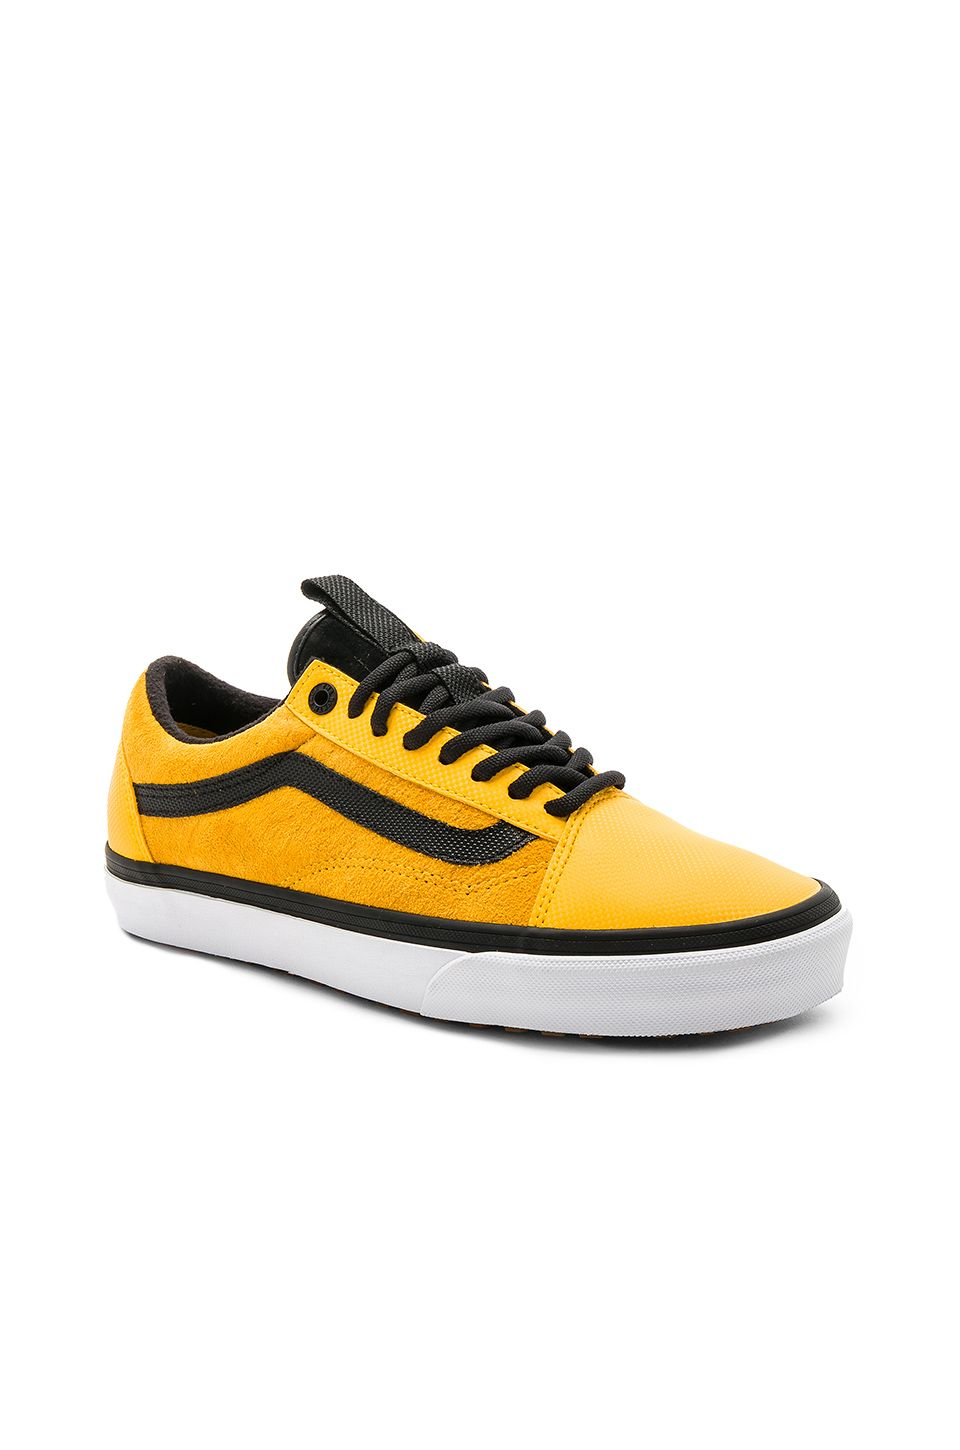 vans x the north face old skool mte schoenen